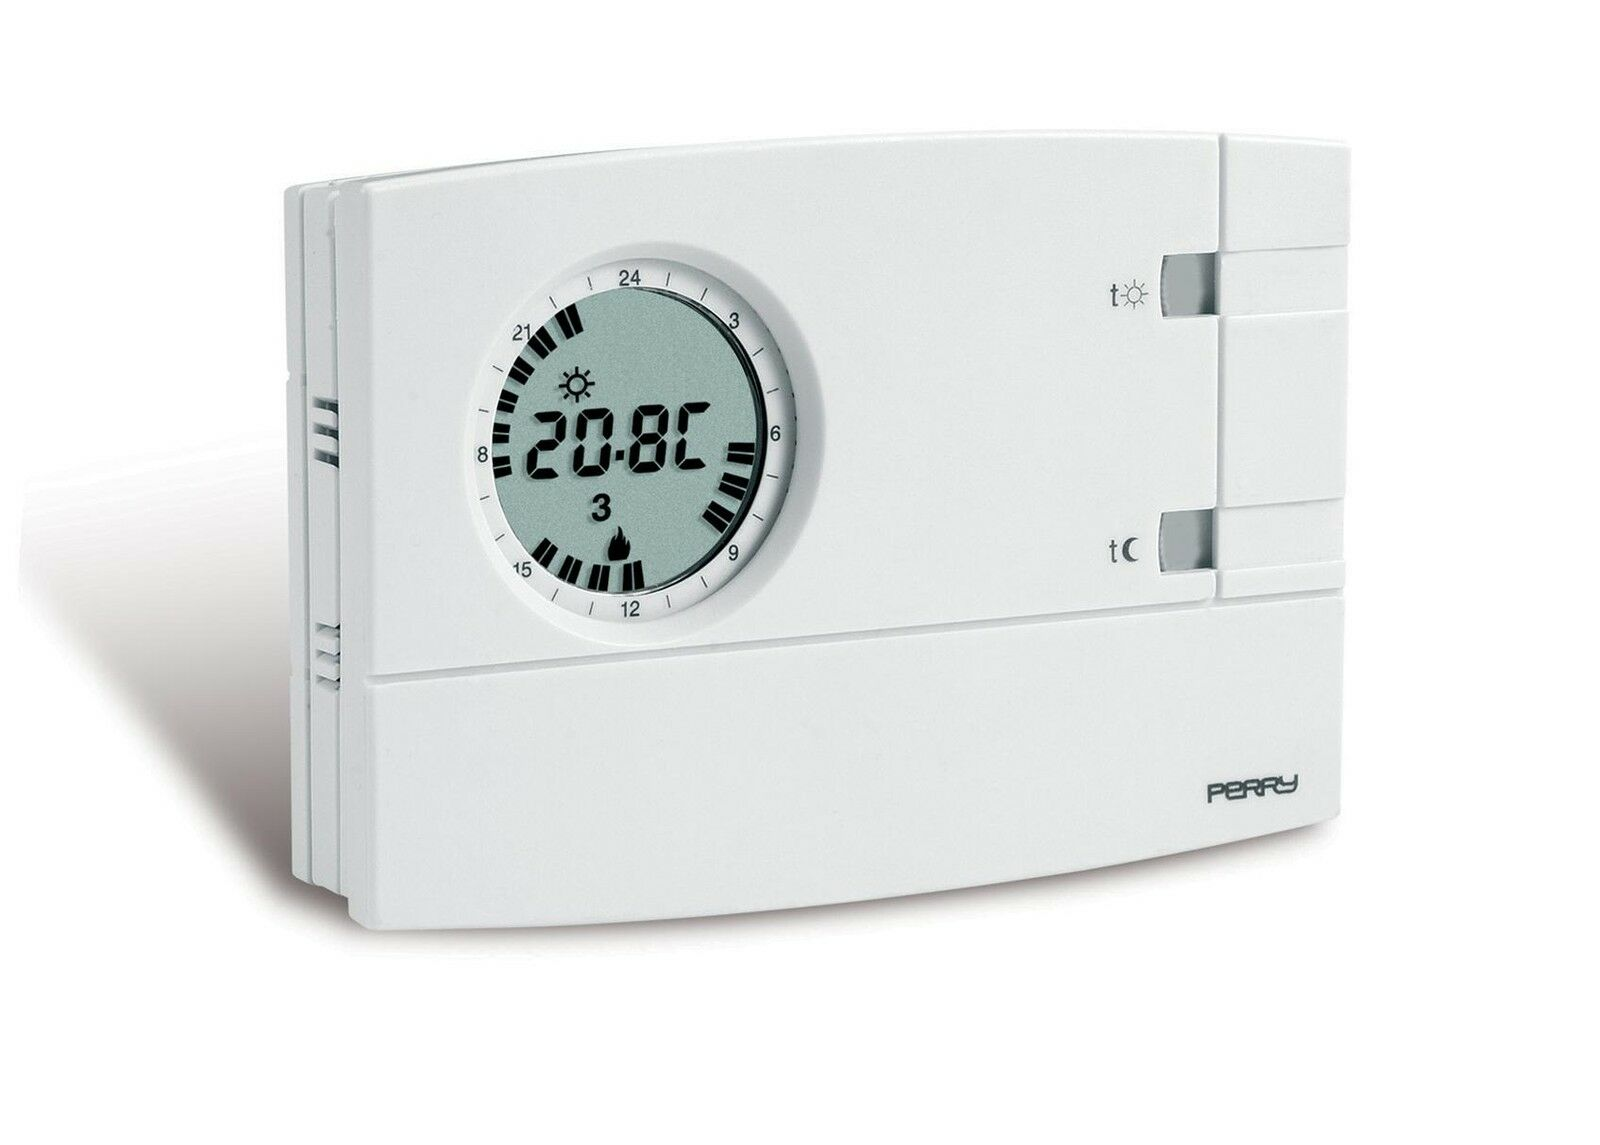 1CRCR309 S PERRY ELECTRIC 1CRCR309 S    CRONOTERMOSTATO DIGITALE AMBIENTE 3V SER